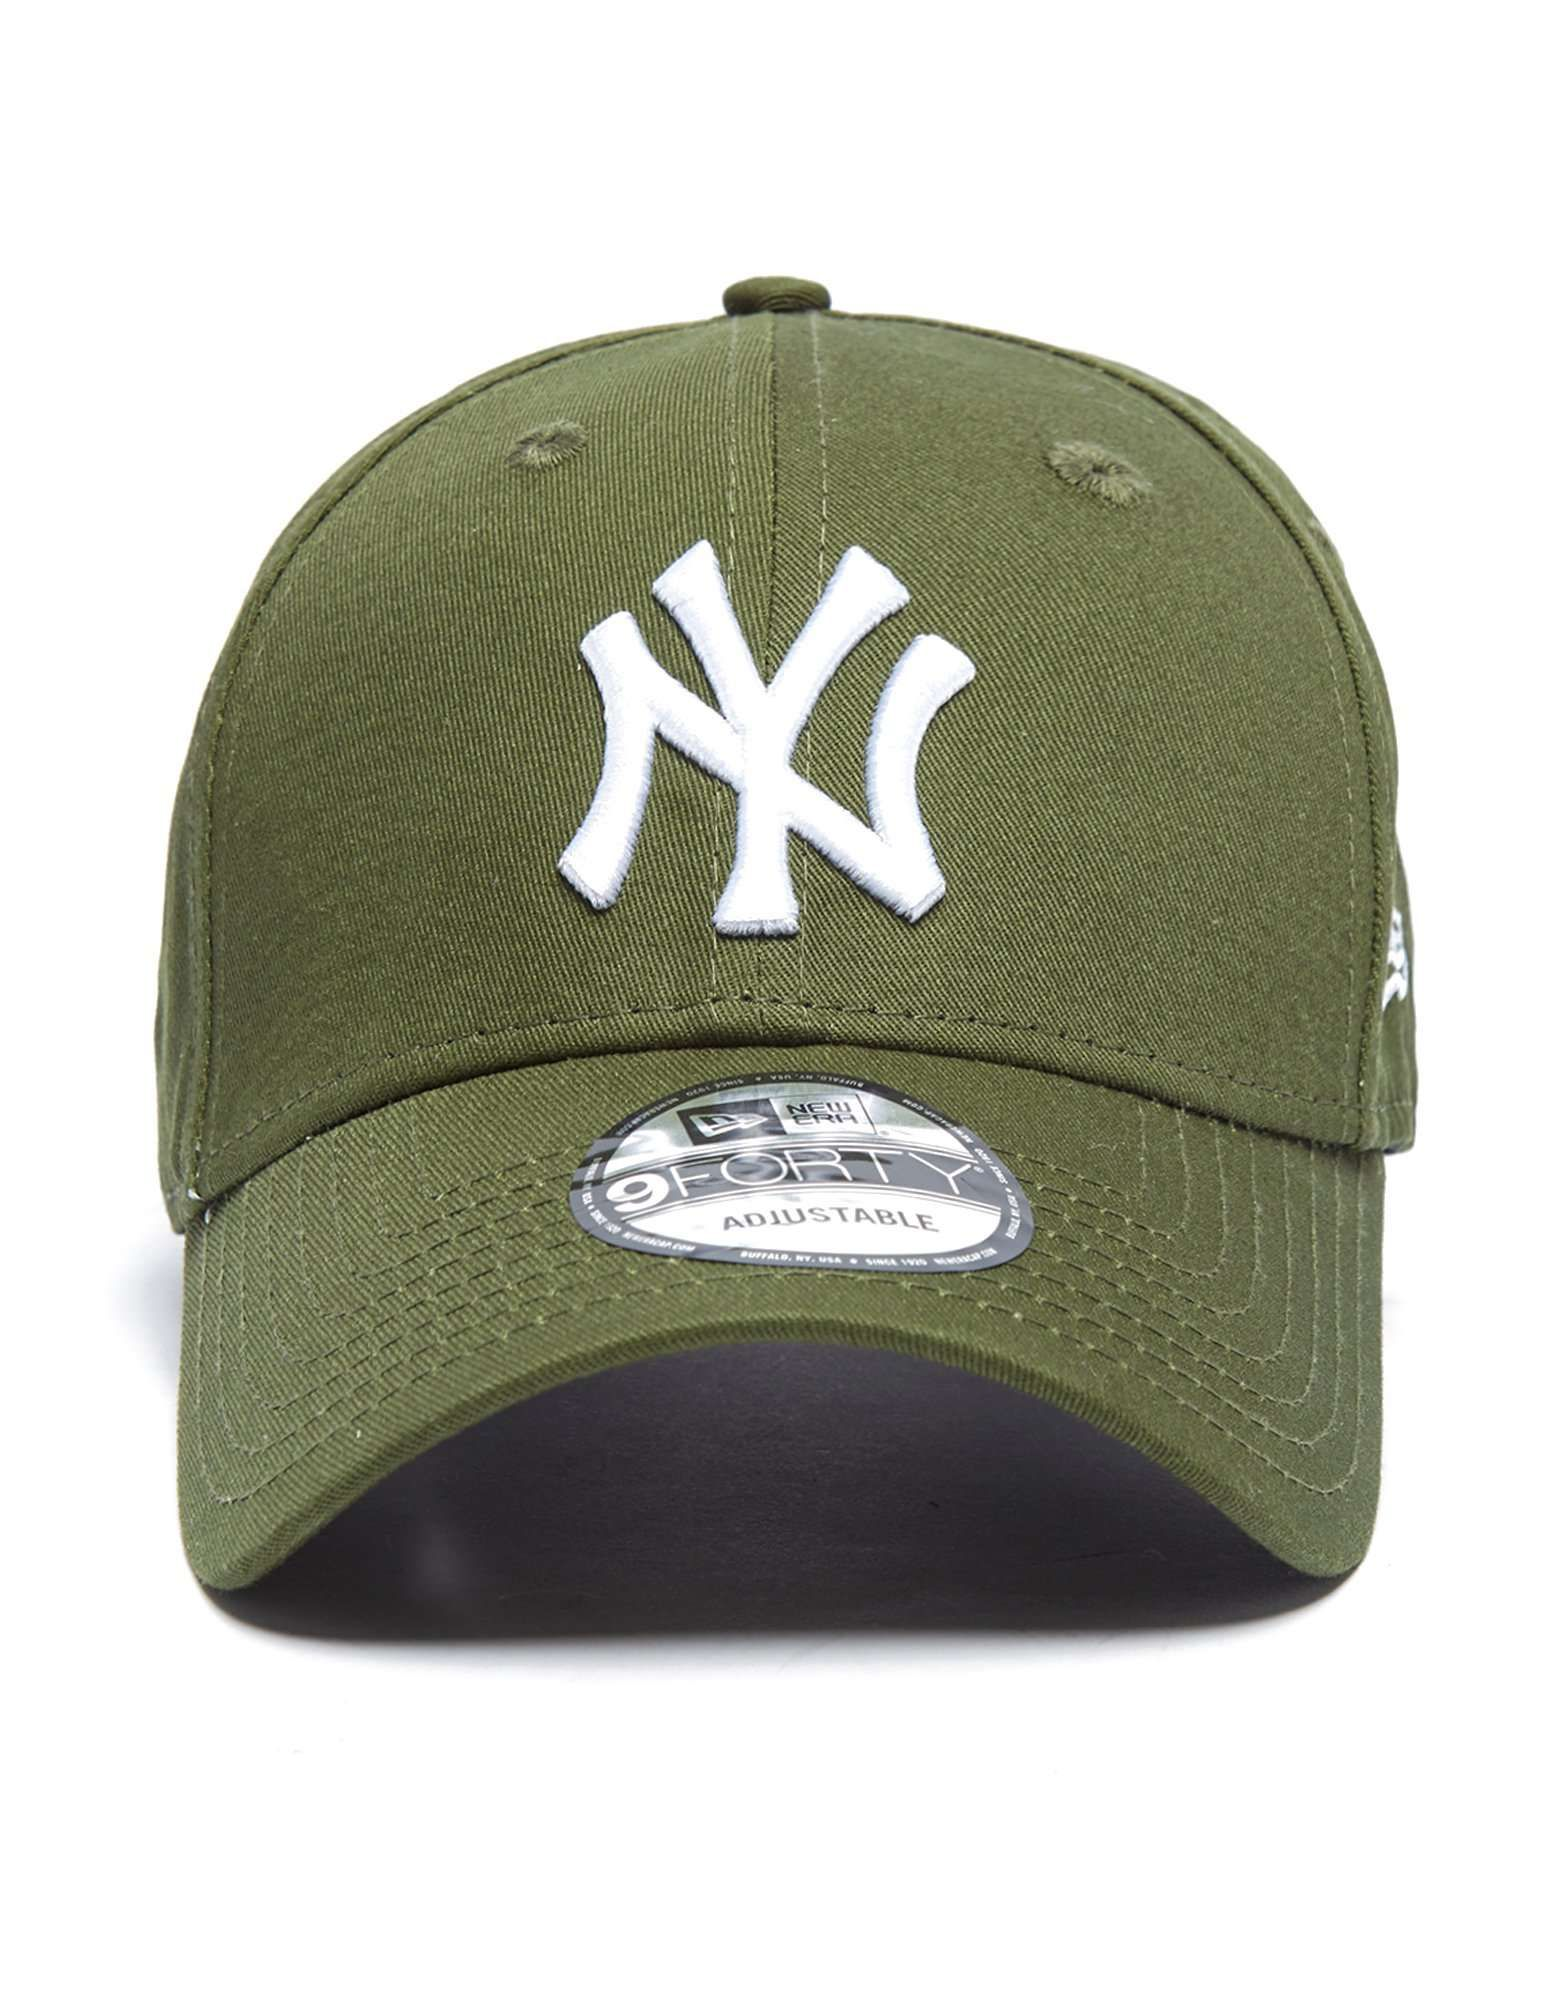 Men's Accessories Mlb New York Yankees Oliv New Era Adjustable Trucker Cap